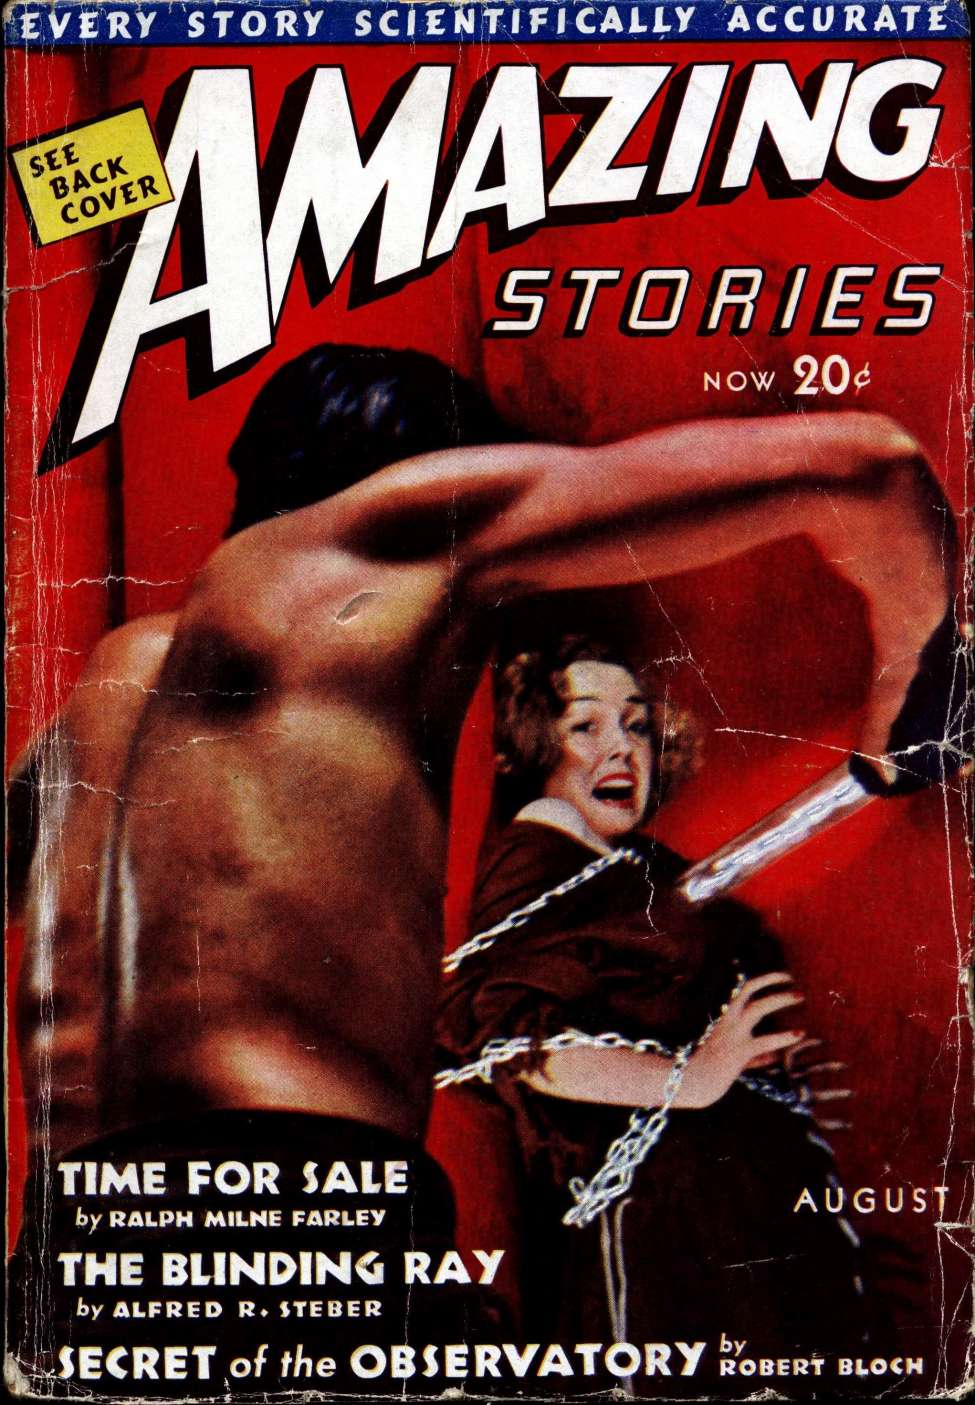 Comic Book Cover For Amazing Stories v12 04 - Secret of the Observatory - Robert Bloch